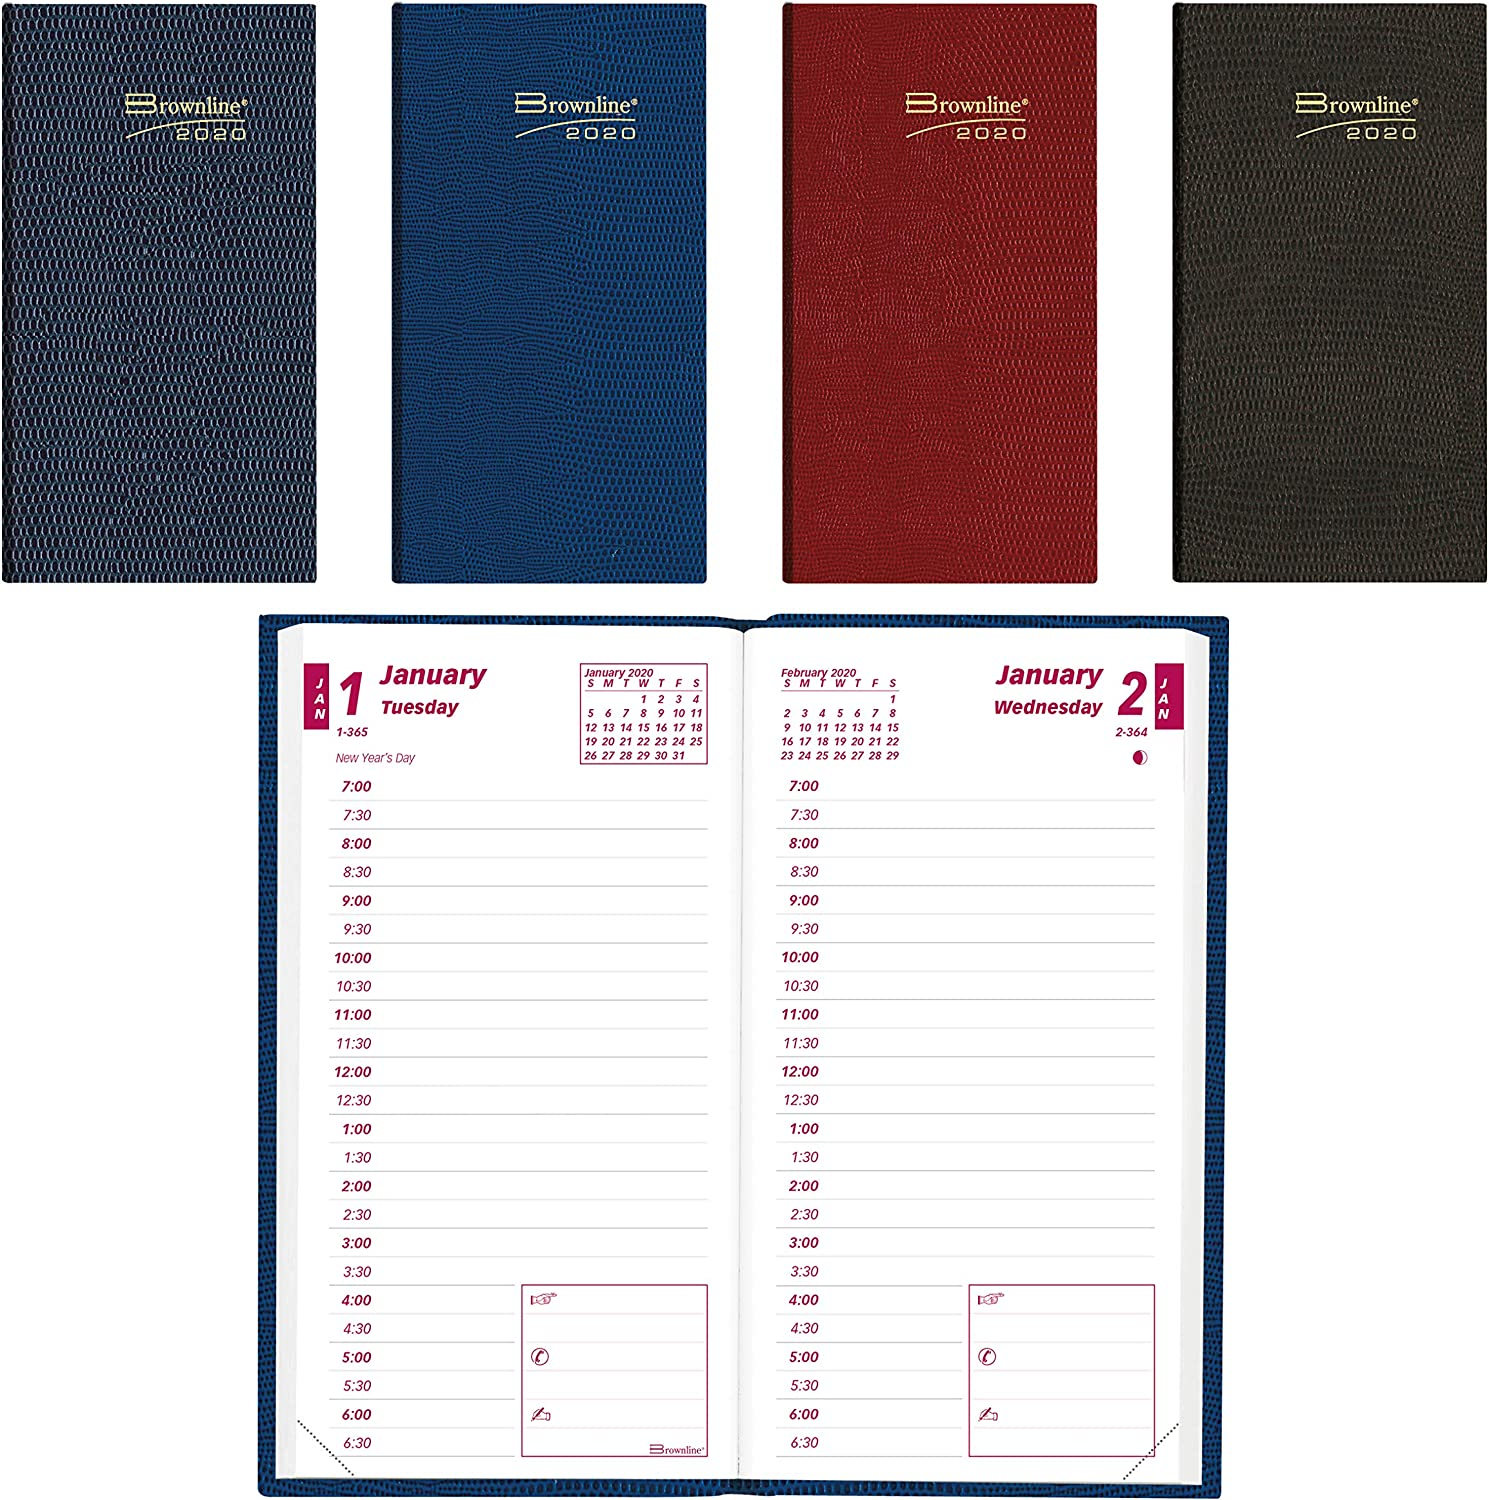 Color May Vary 6 x 3.125 inches Assorted Colors Brownline 2020 Planner Daily Appointment Book CB401.ASX-20